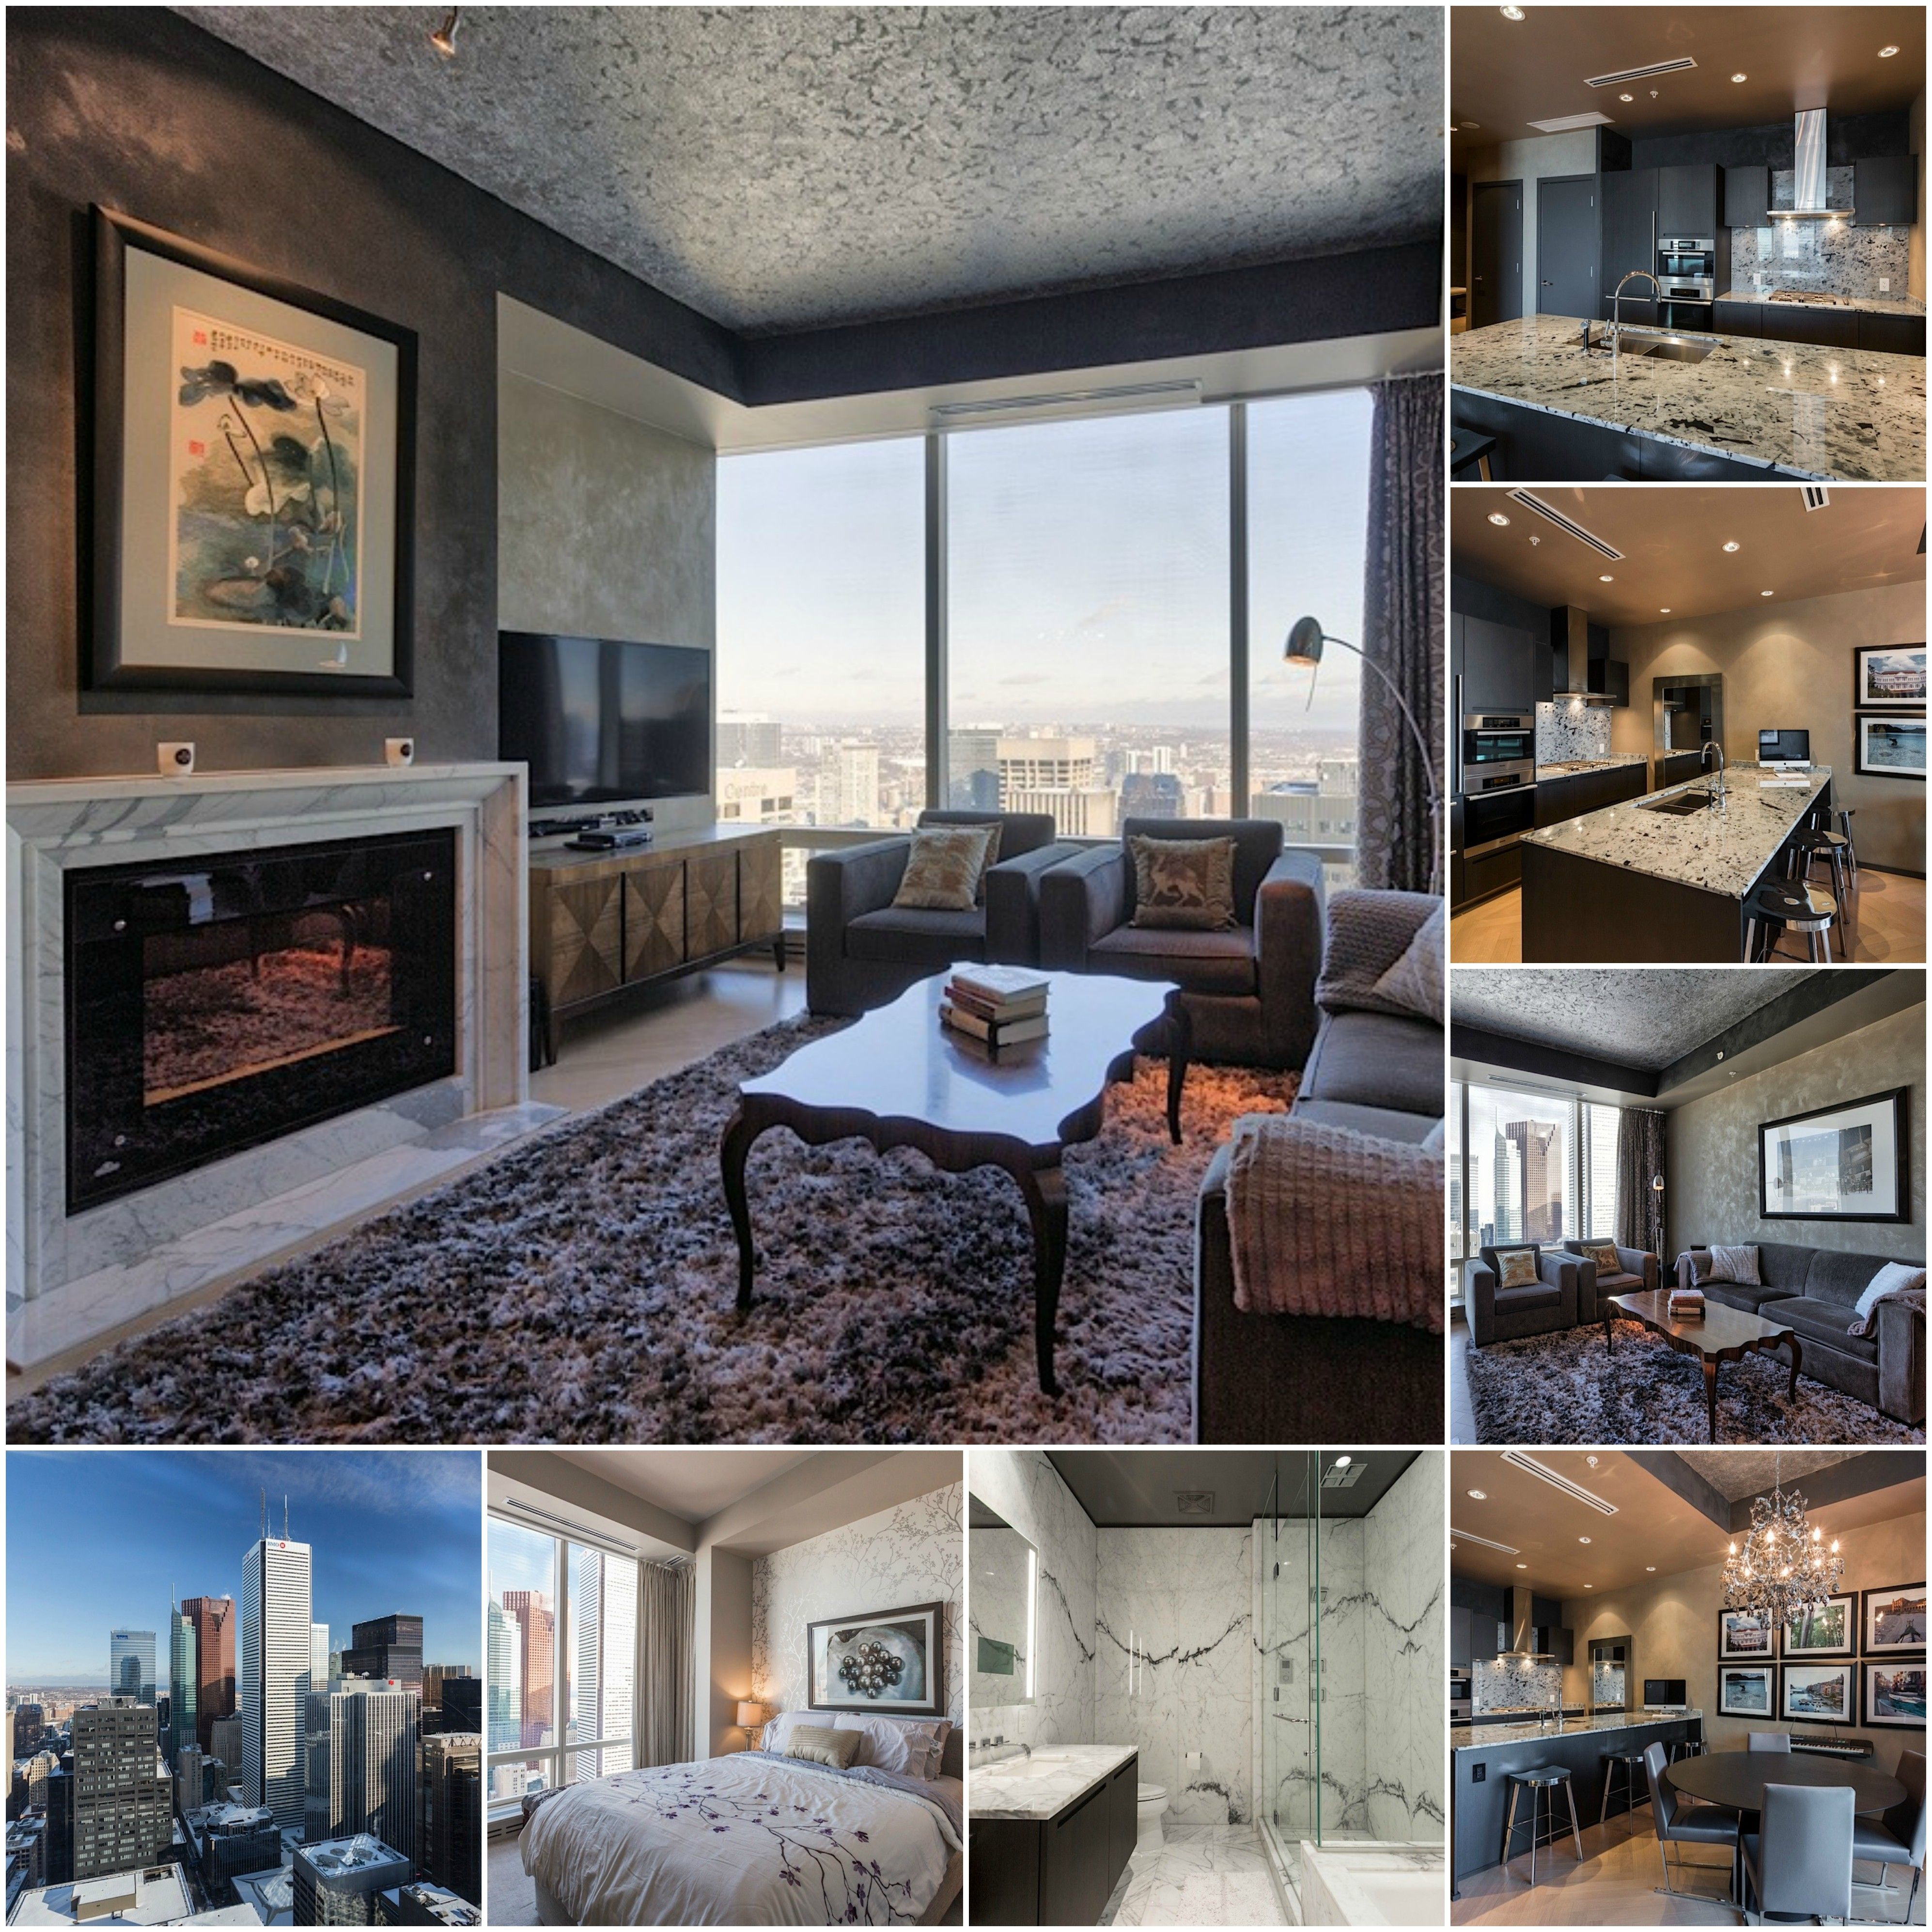 New Listing! Book your showing today! 1 BR 1 WR Condo